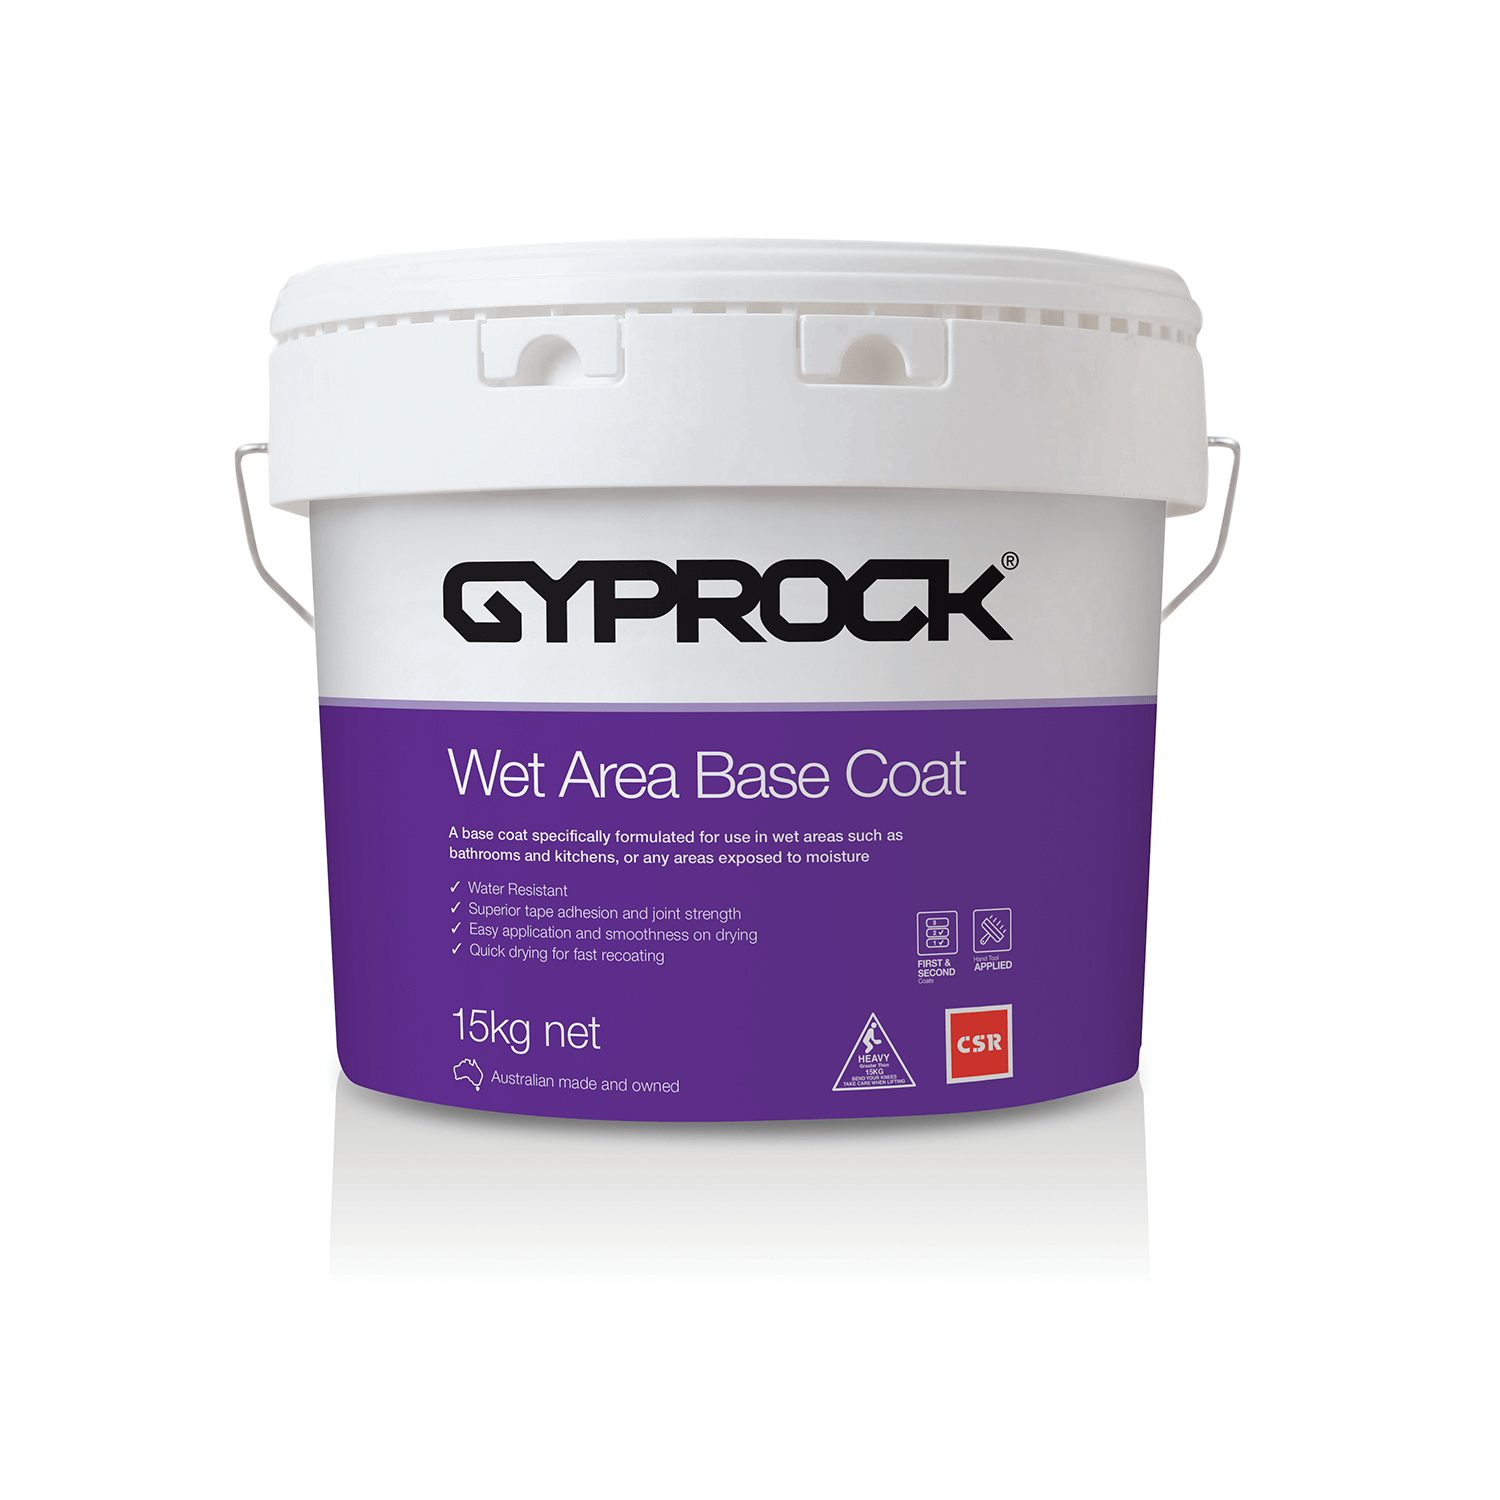 Gyprock Wet Area Base Coat